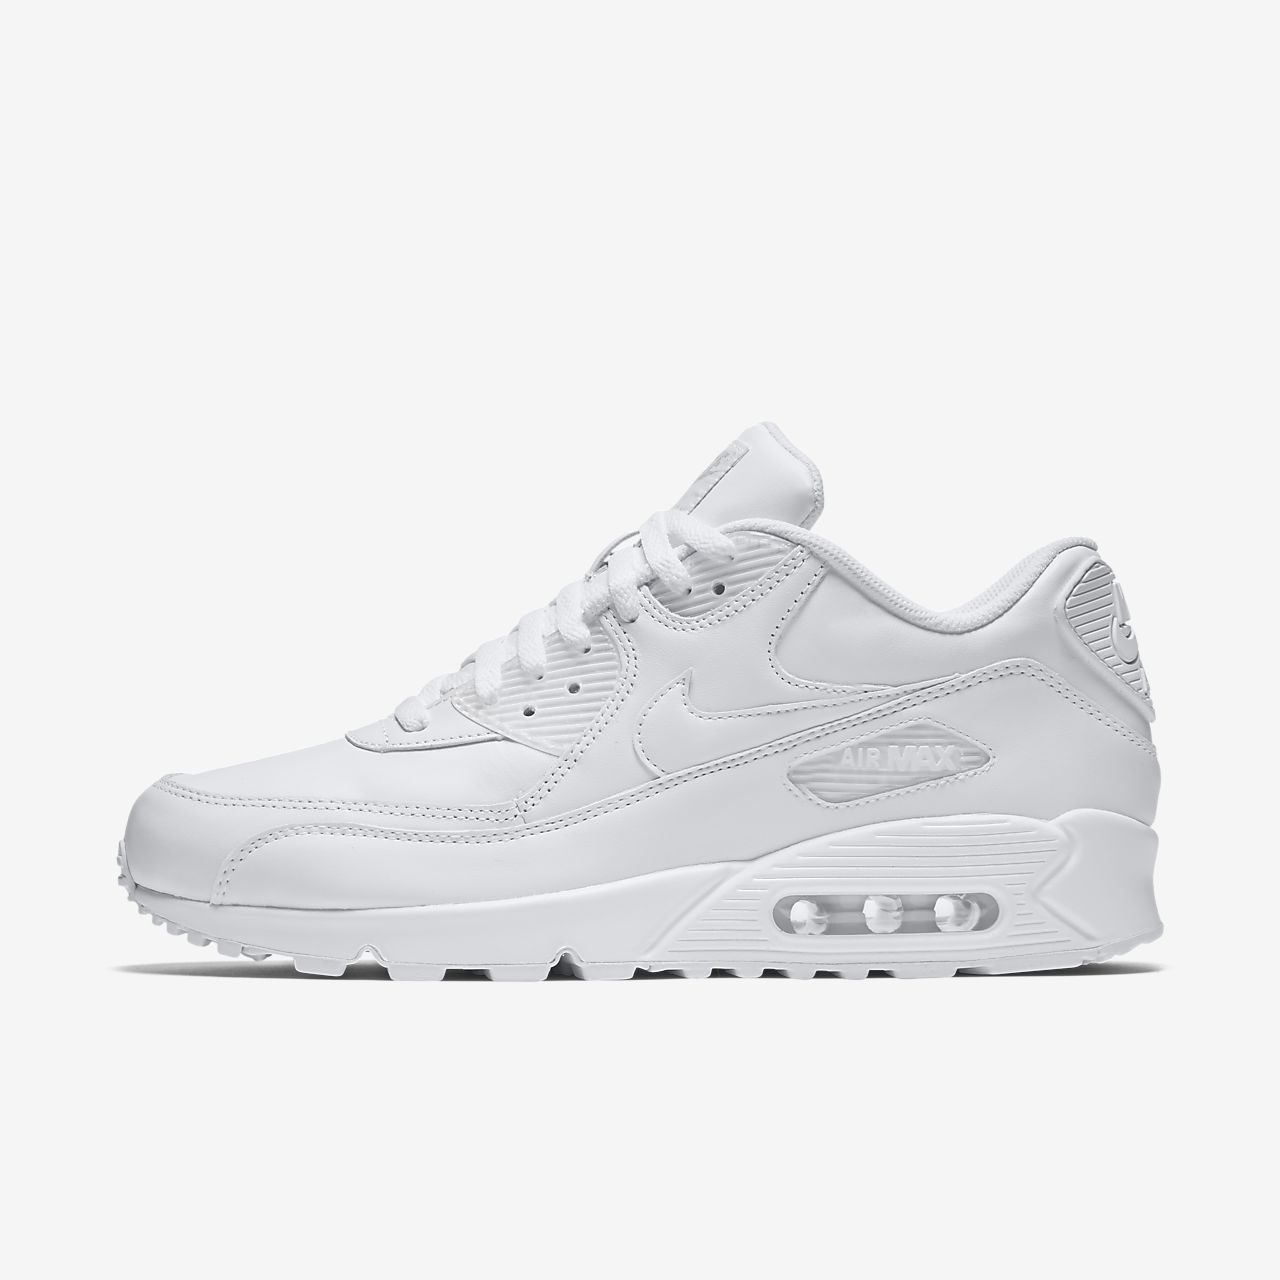 nike air max 90 men's shoes nz